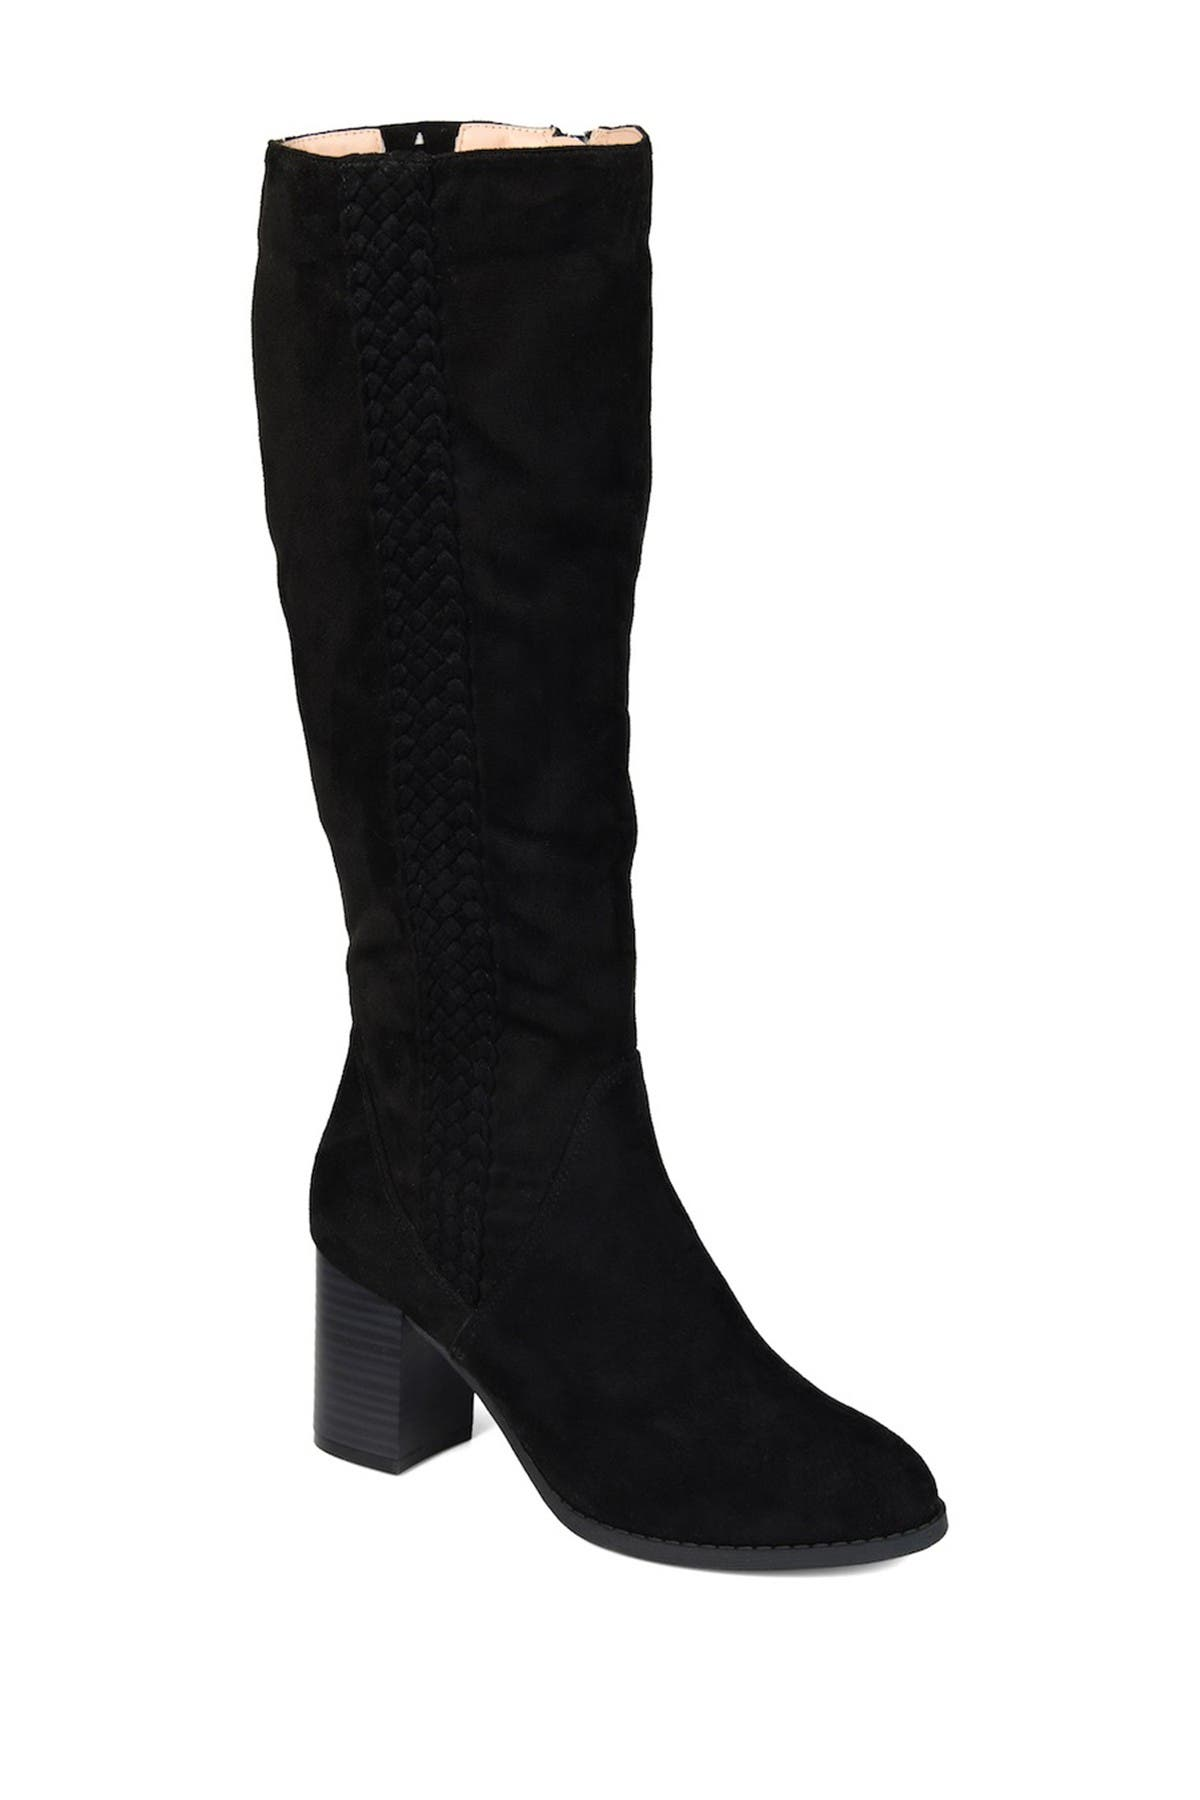 Image of JOURNEE Collection Gentri Braid Trim Boot - Wide Calf